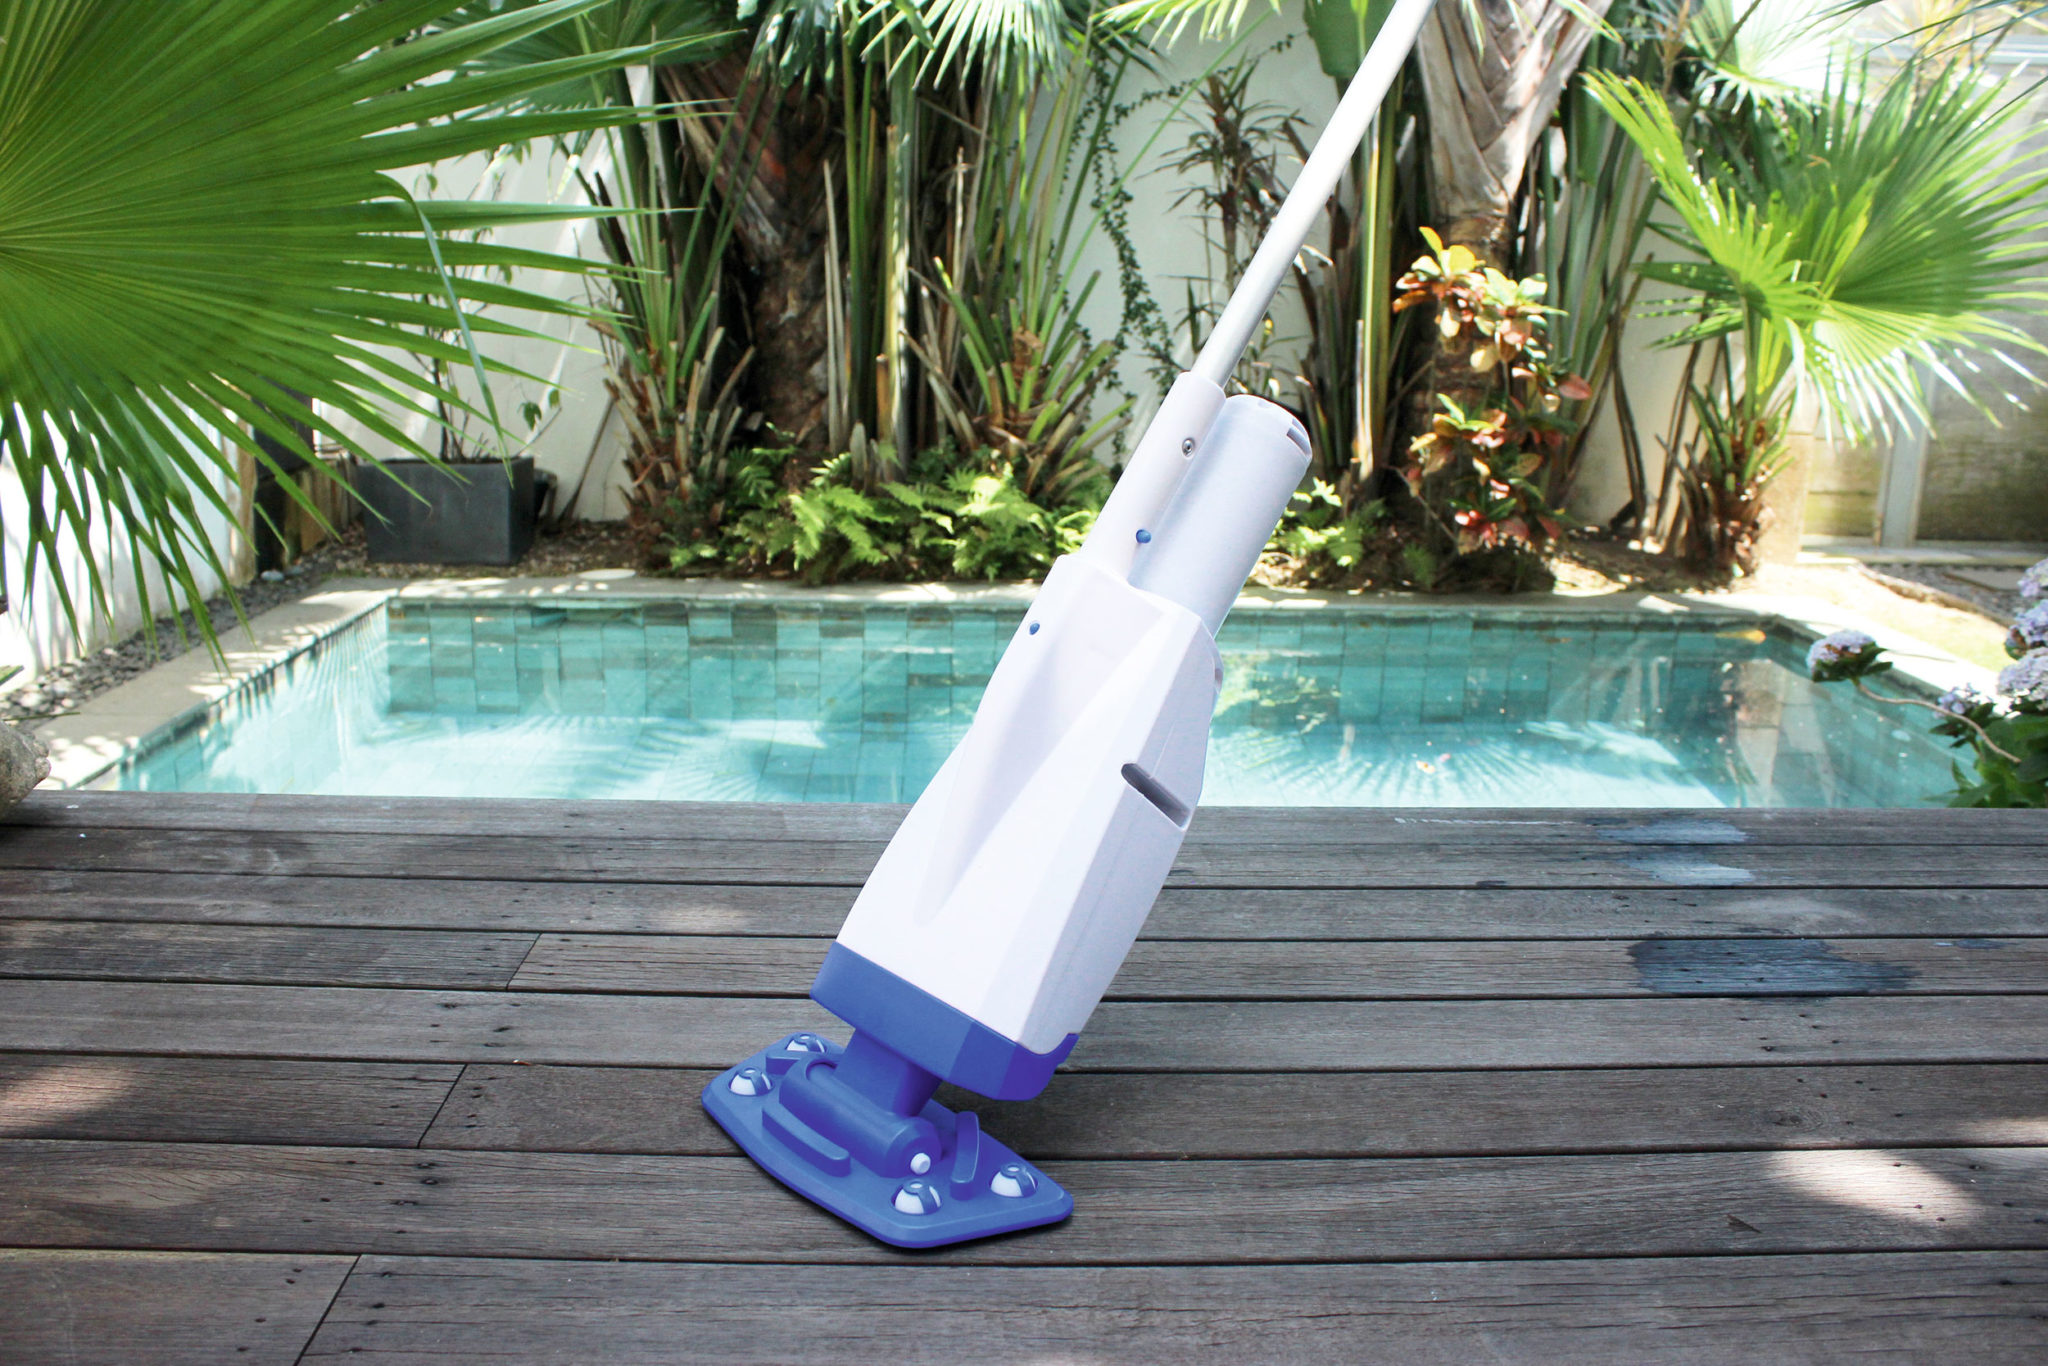 Aspirateur Aqua Powercell devant une piscine